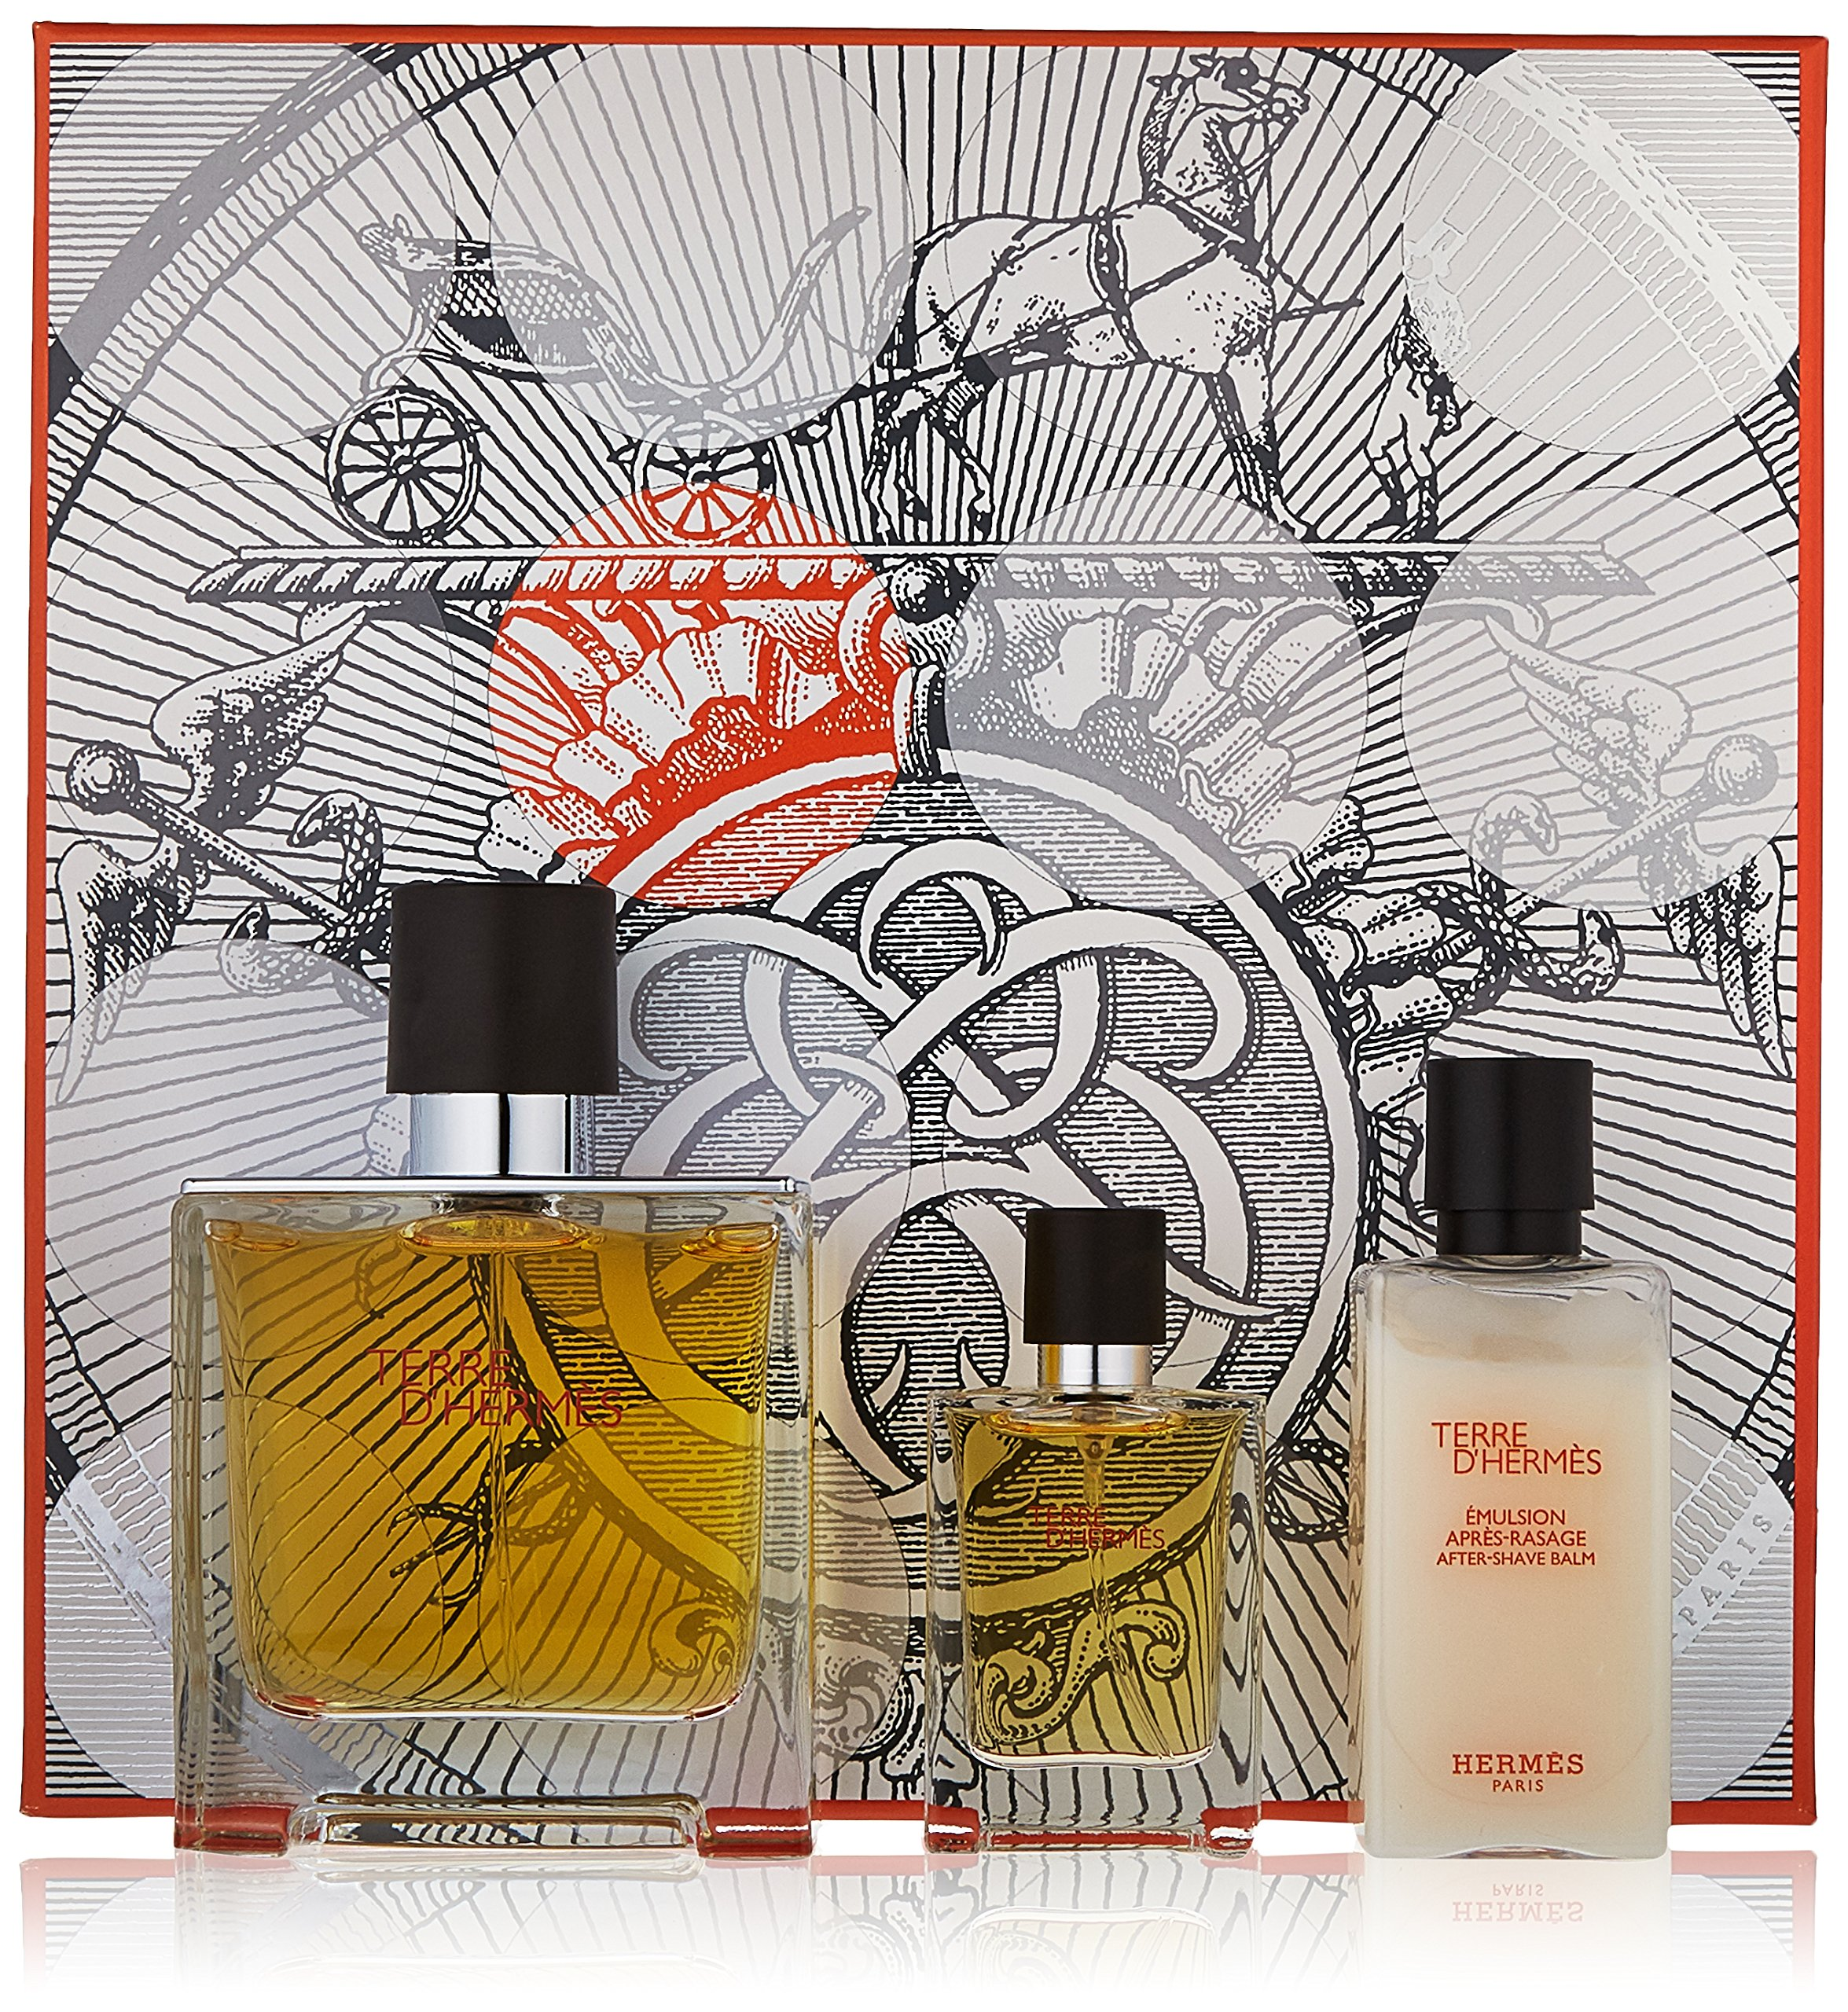 Terre D'Hermes by Hermes for Men 3 Piece Set Includes: 2.5 oz Pure Parfum Spray + 0.42 oz Pure Parfum Spray + 1.35 oz Aftershave Balm by Hermes